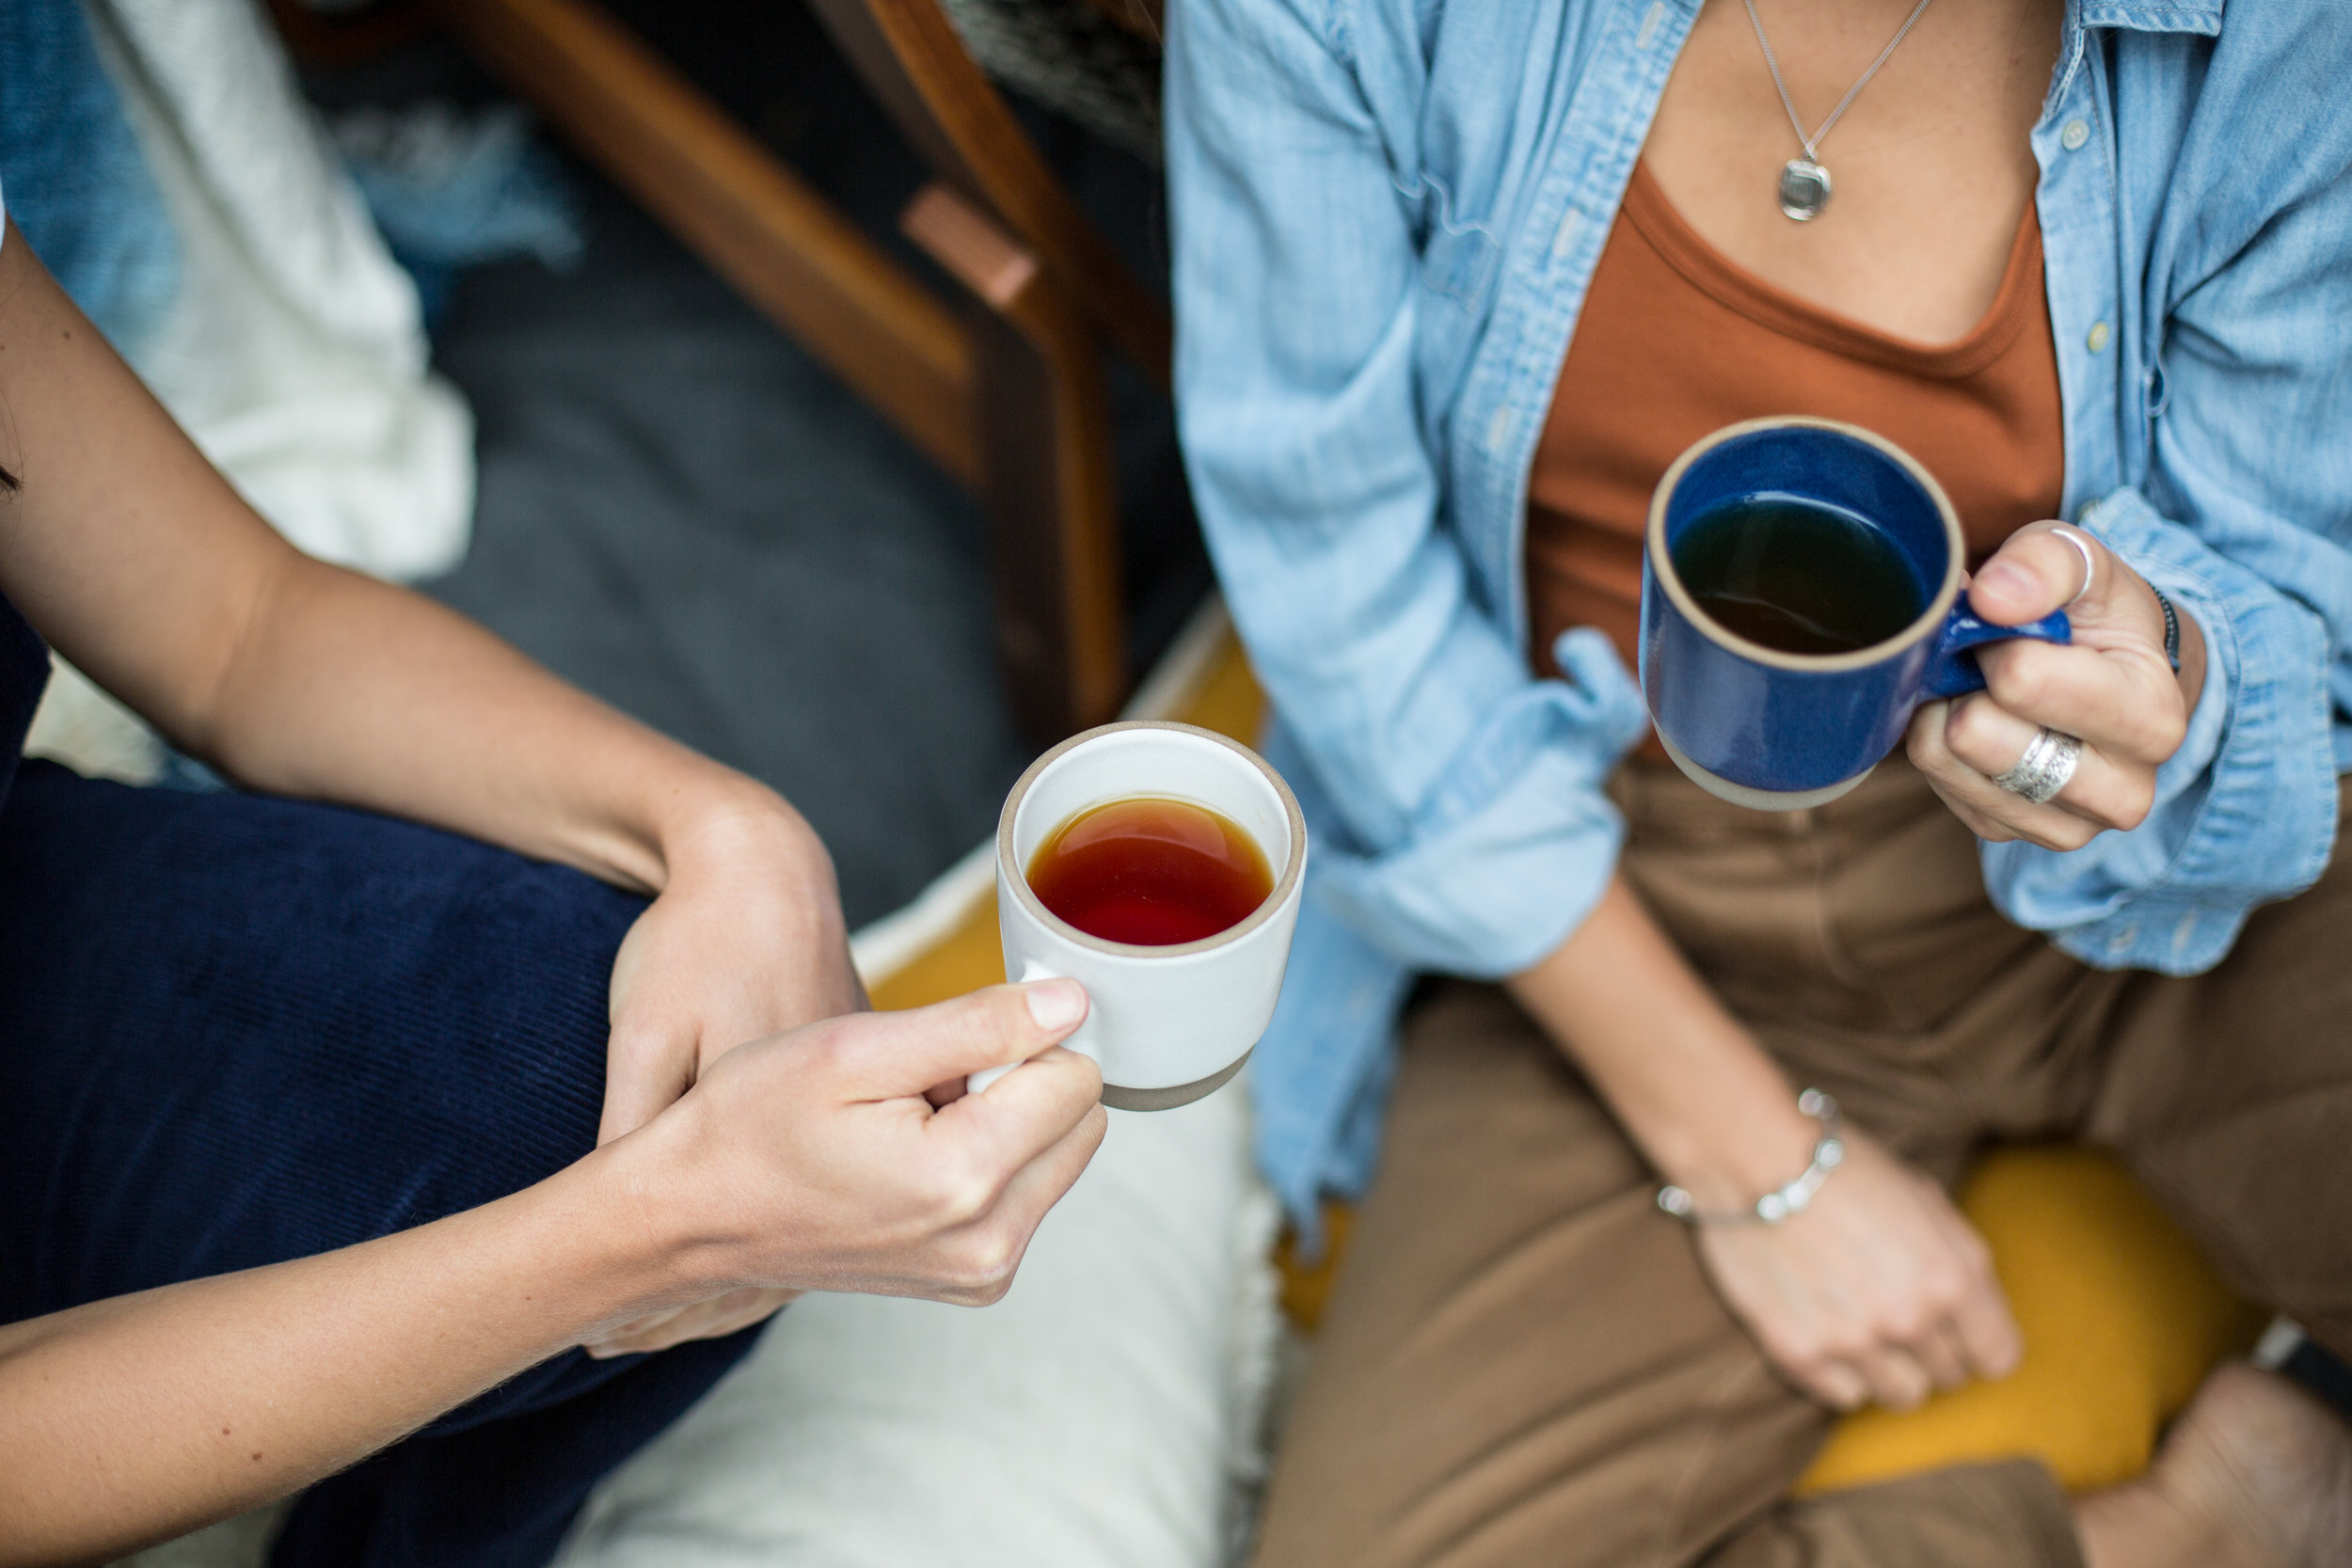 Two women drinking tea together